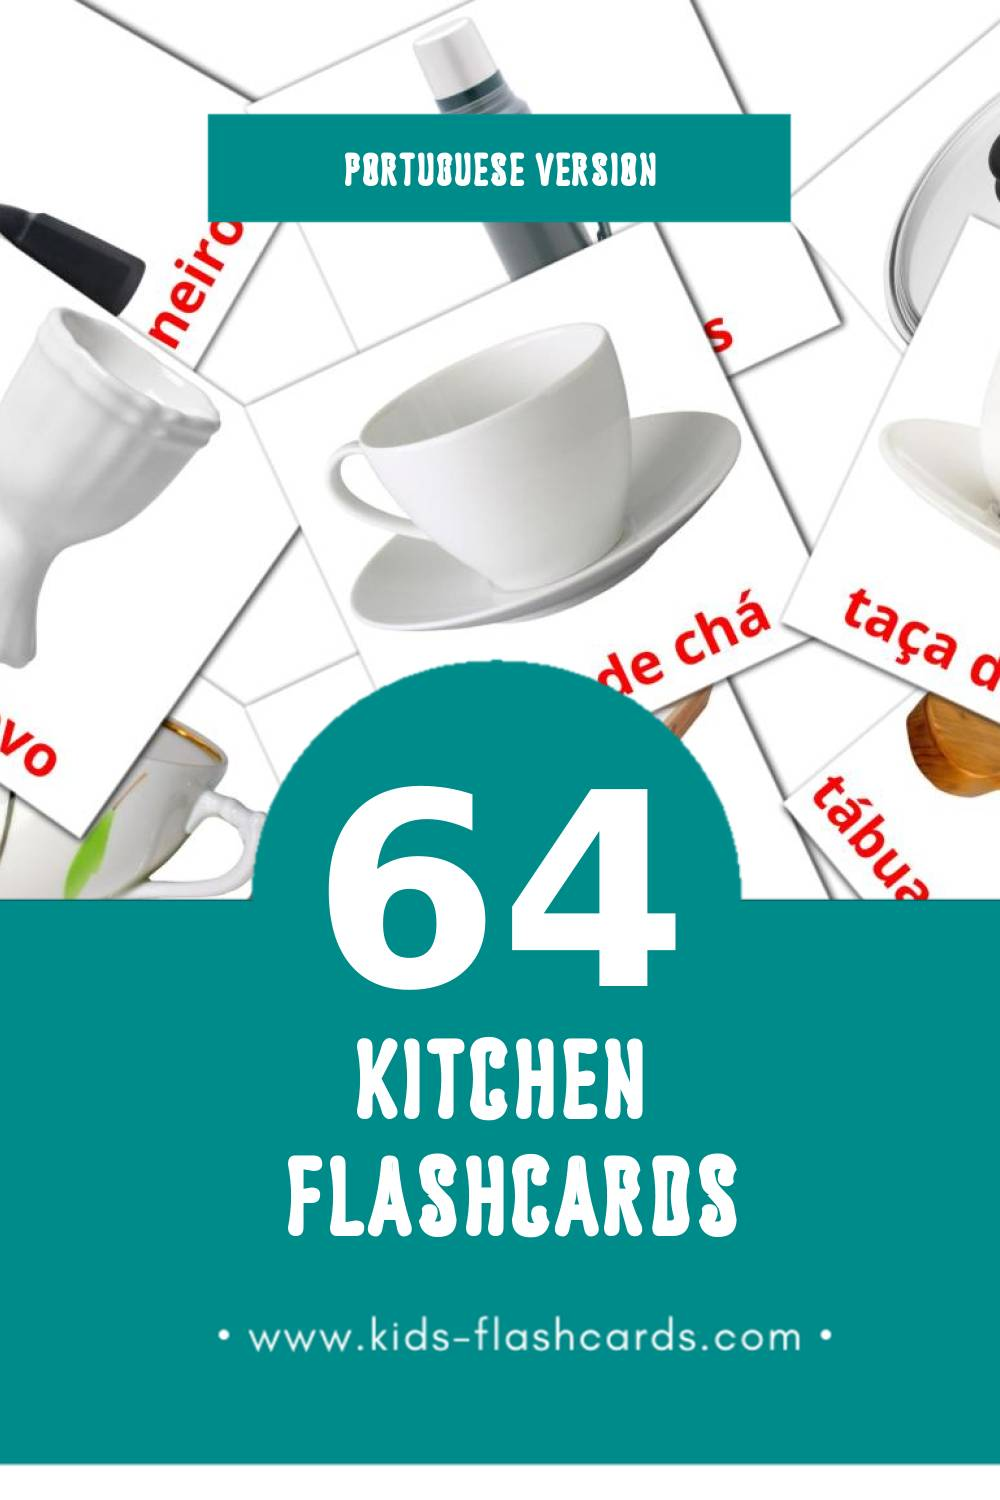 Visual Cozinha Flashcards for Toddlers (64 cards in Portuguese)